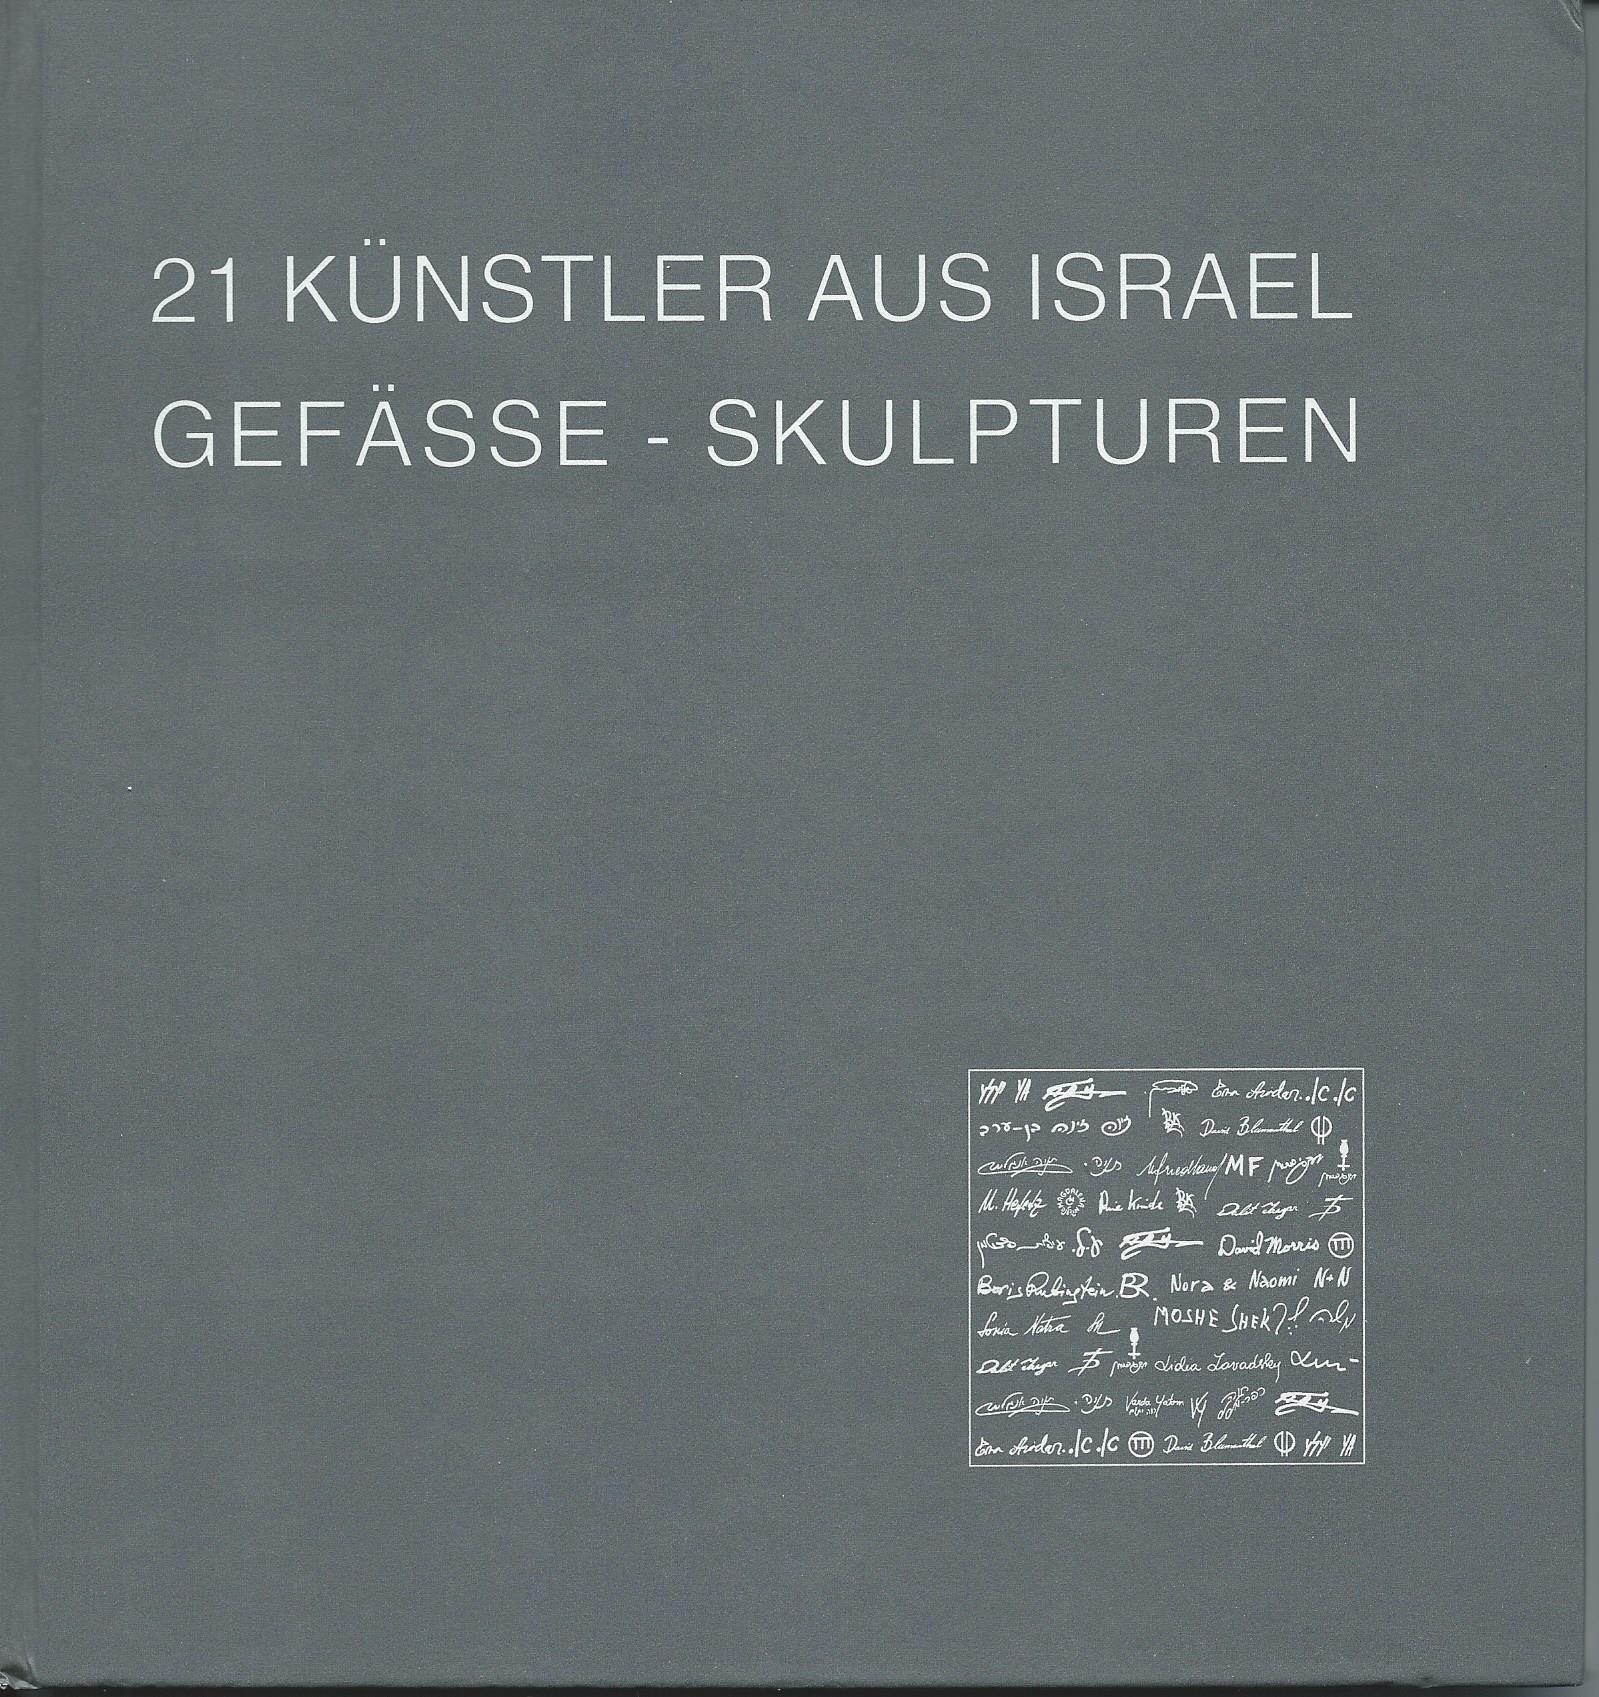 Image for German Text, Mostly Images. ; 21 KUNSTLER AUS ISRAEL GEFASSE - SKULPTUREN